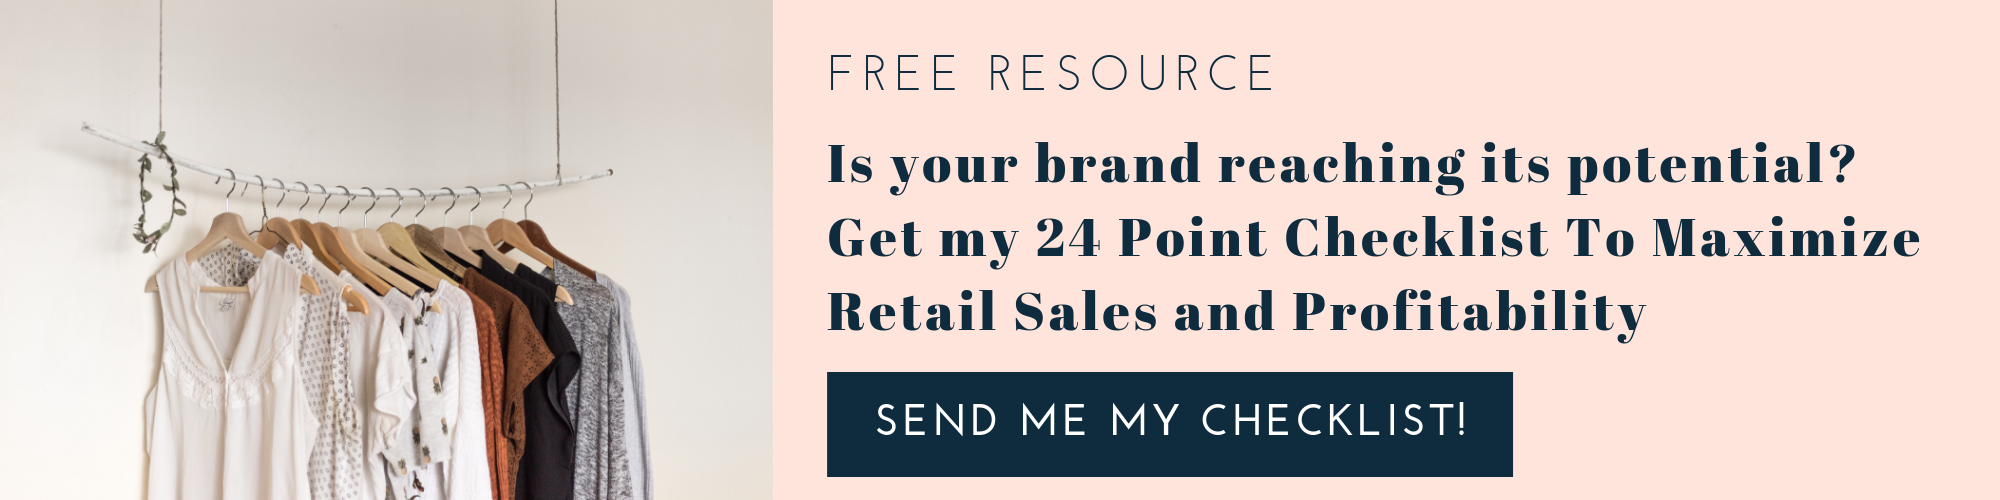 Download my 24 Point Checklist to Maximize Retail Sales & Profitability